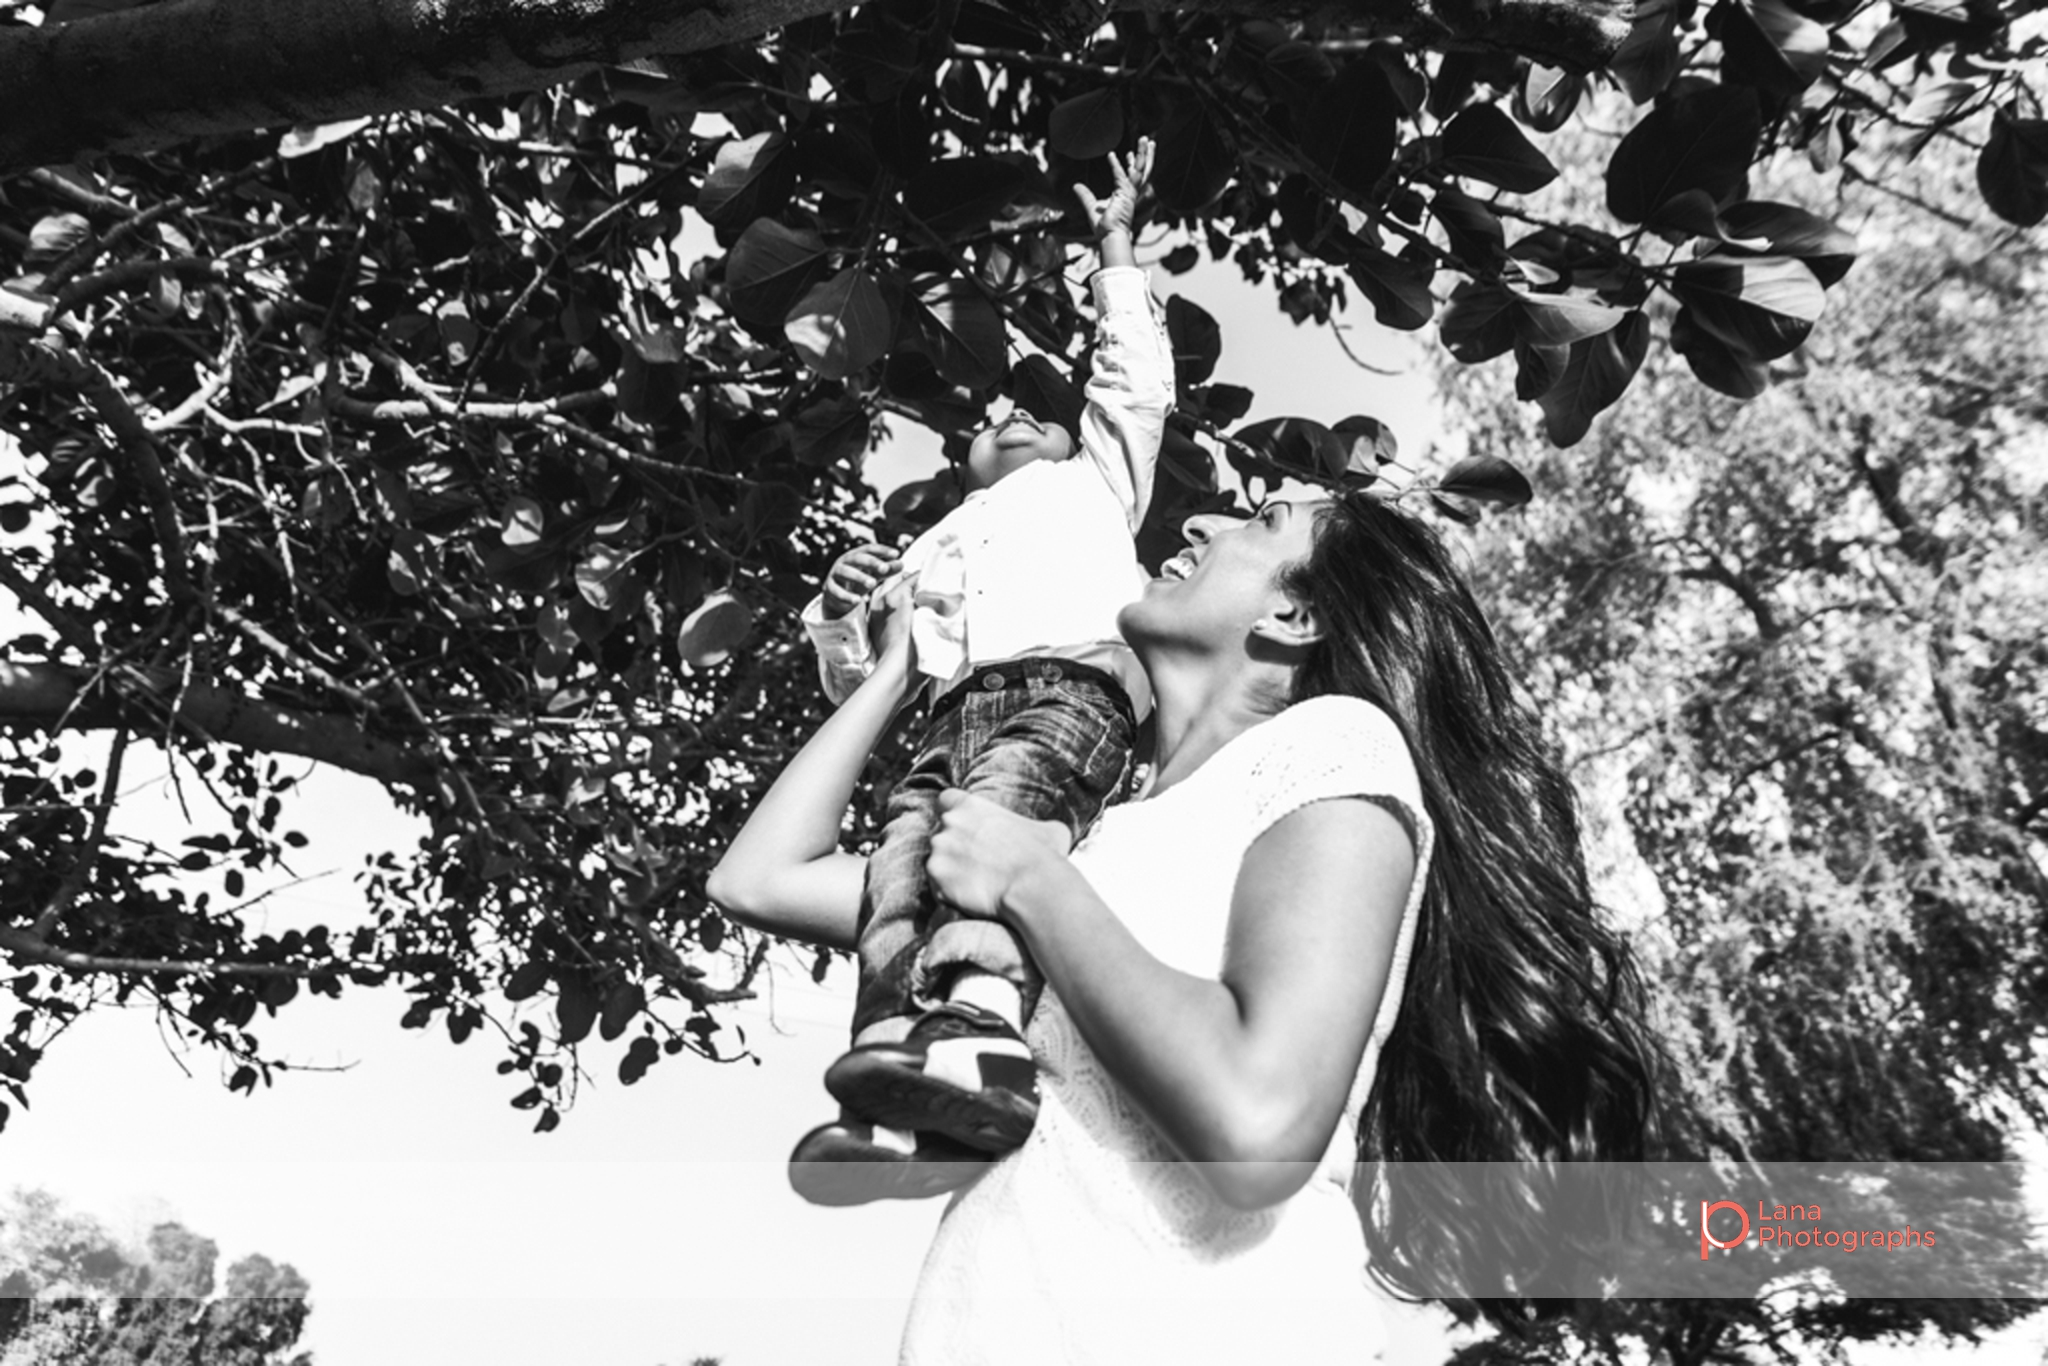 Lana Photographs Family Photographer Dubai Top Family Photographers mother with long black hair carrying her child under a tree